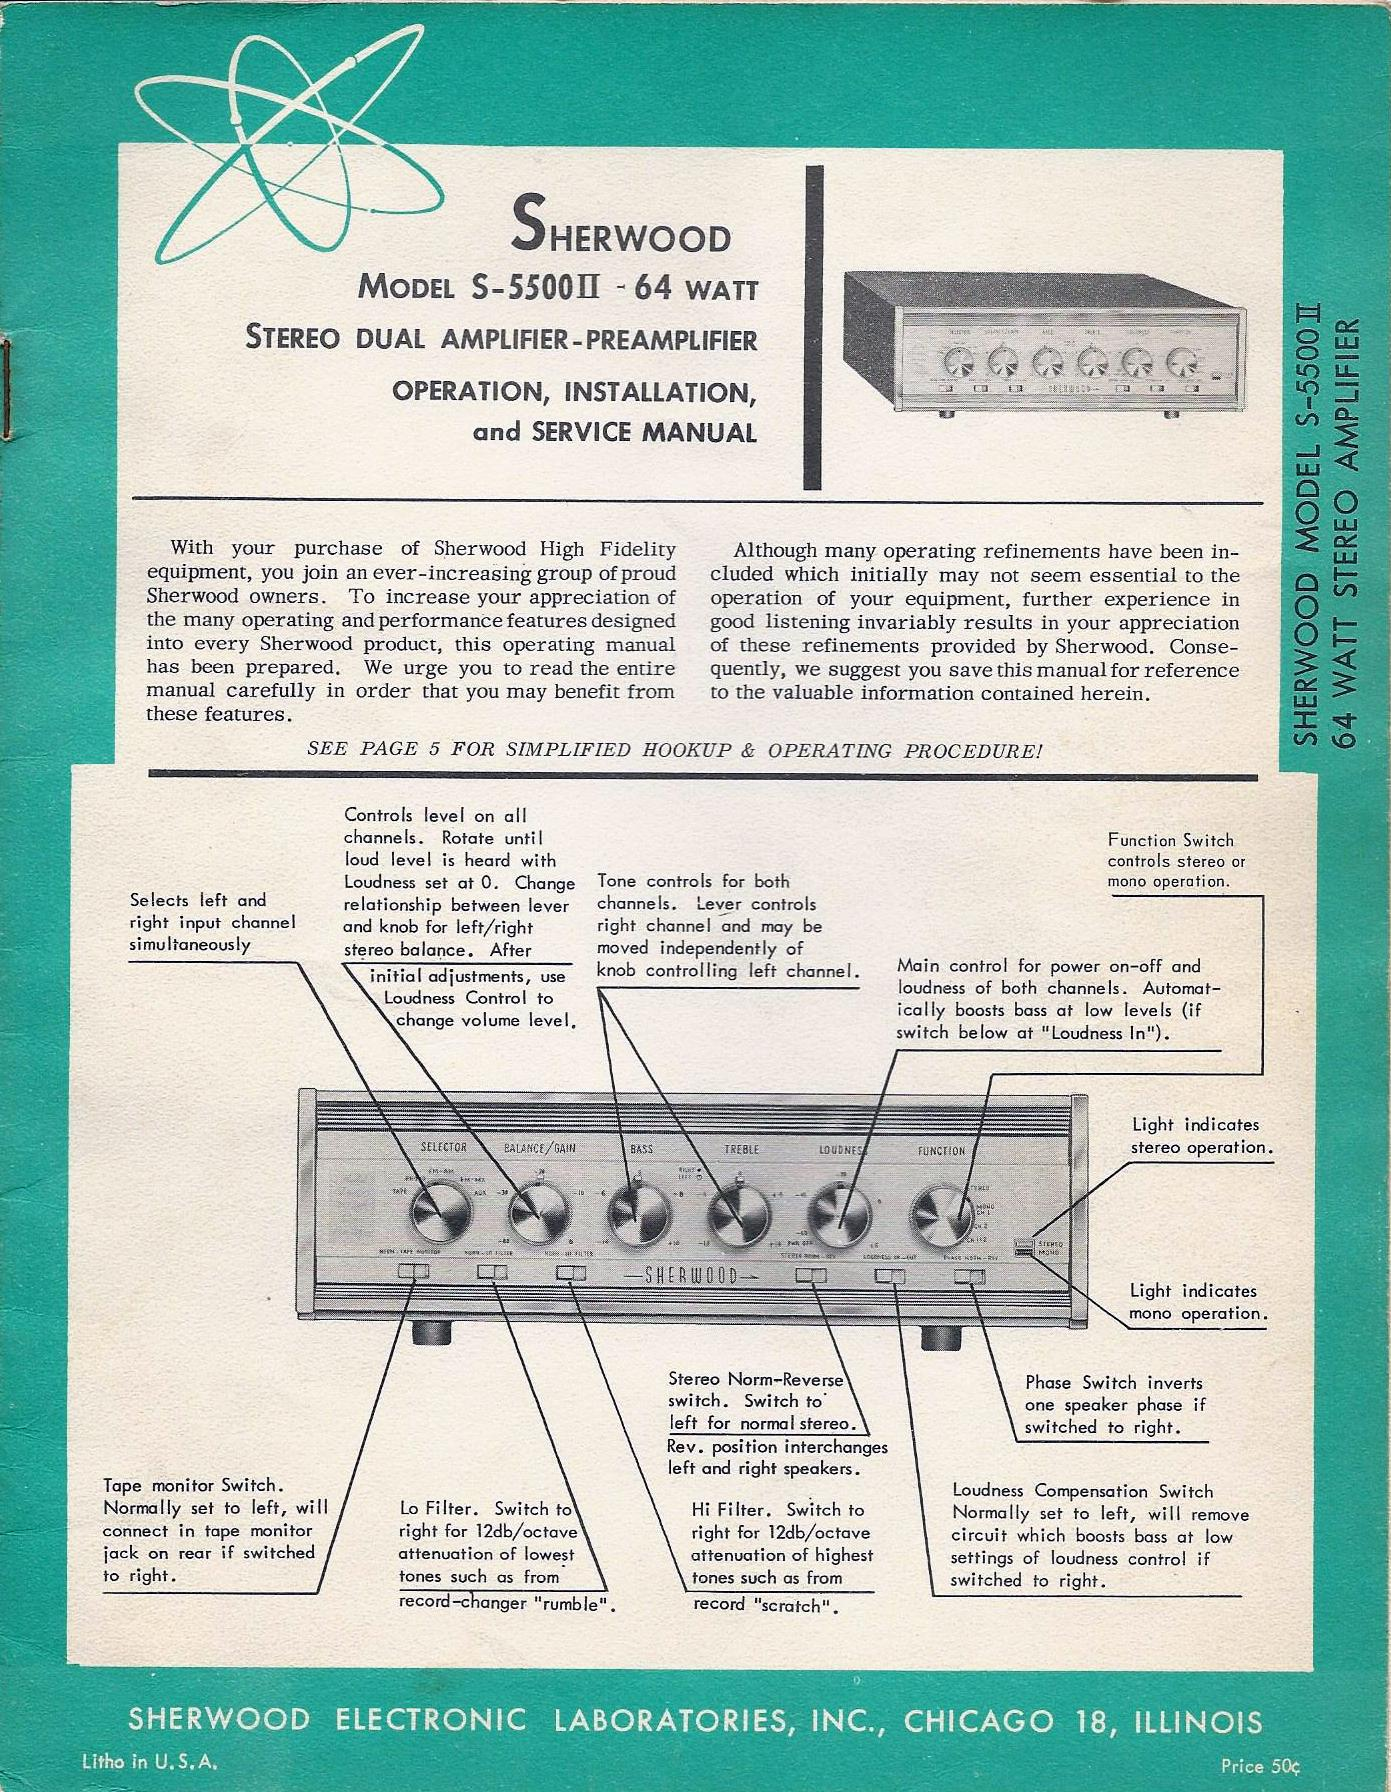 Manual Document Service Hobart Uxuxtlkitpcb Printed Circuit Board And Eprom Kit Climate Array File Vintage For Sherwood Stereo Dual Amplifier Rh Commons Wikimedia Org